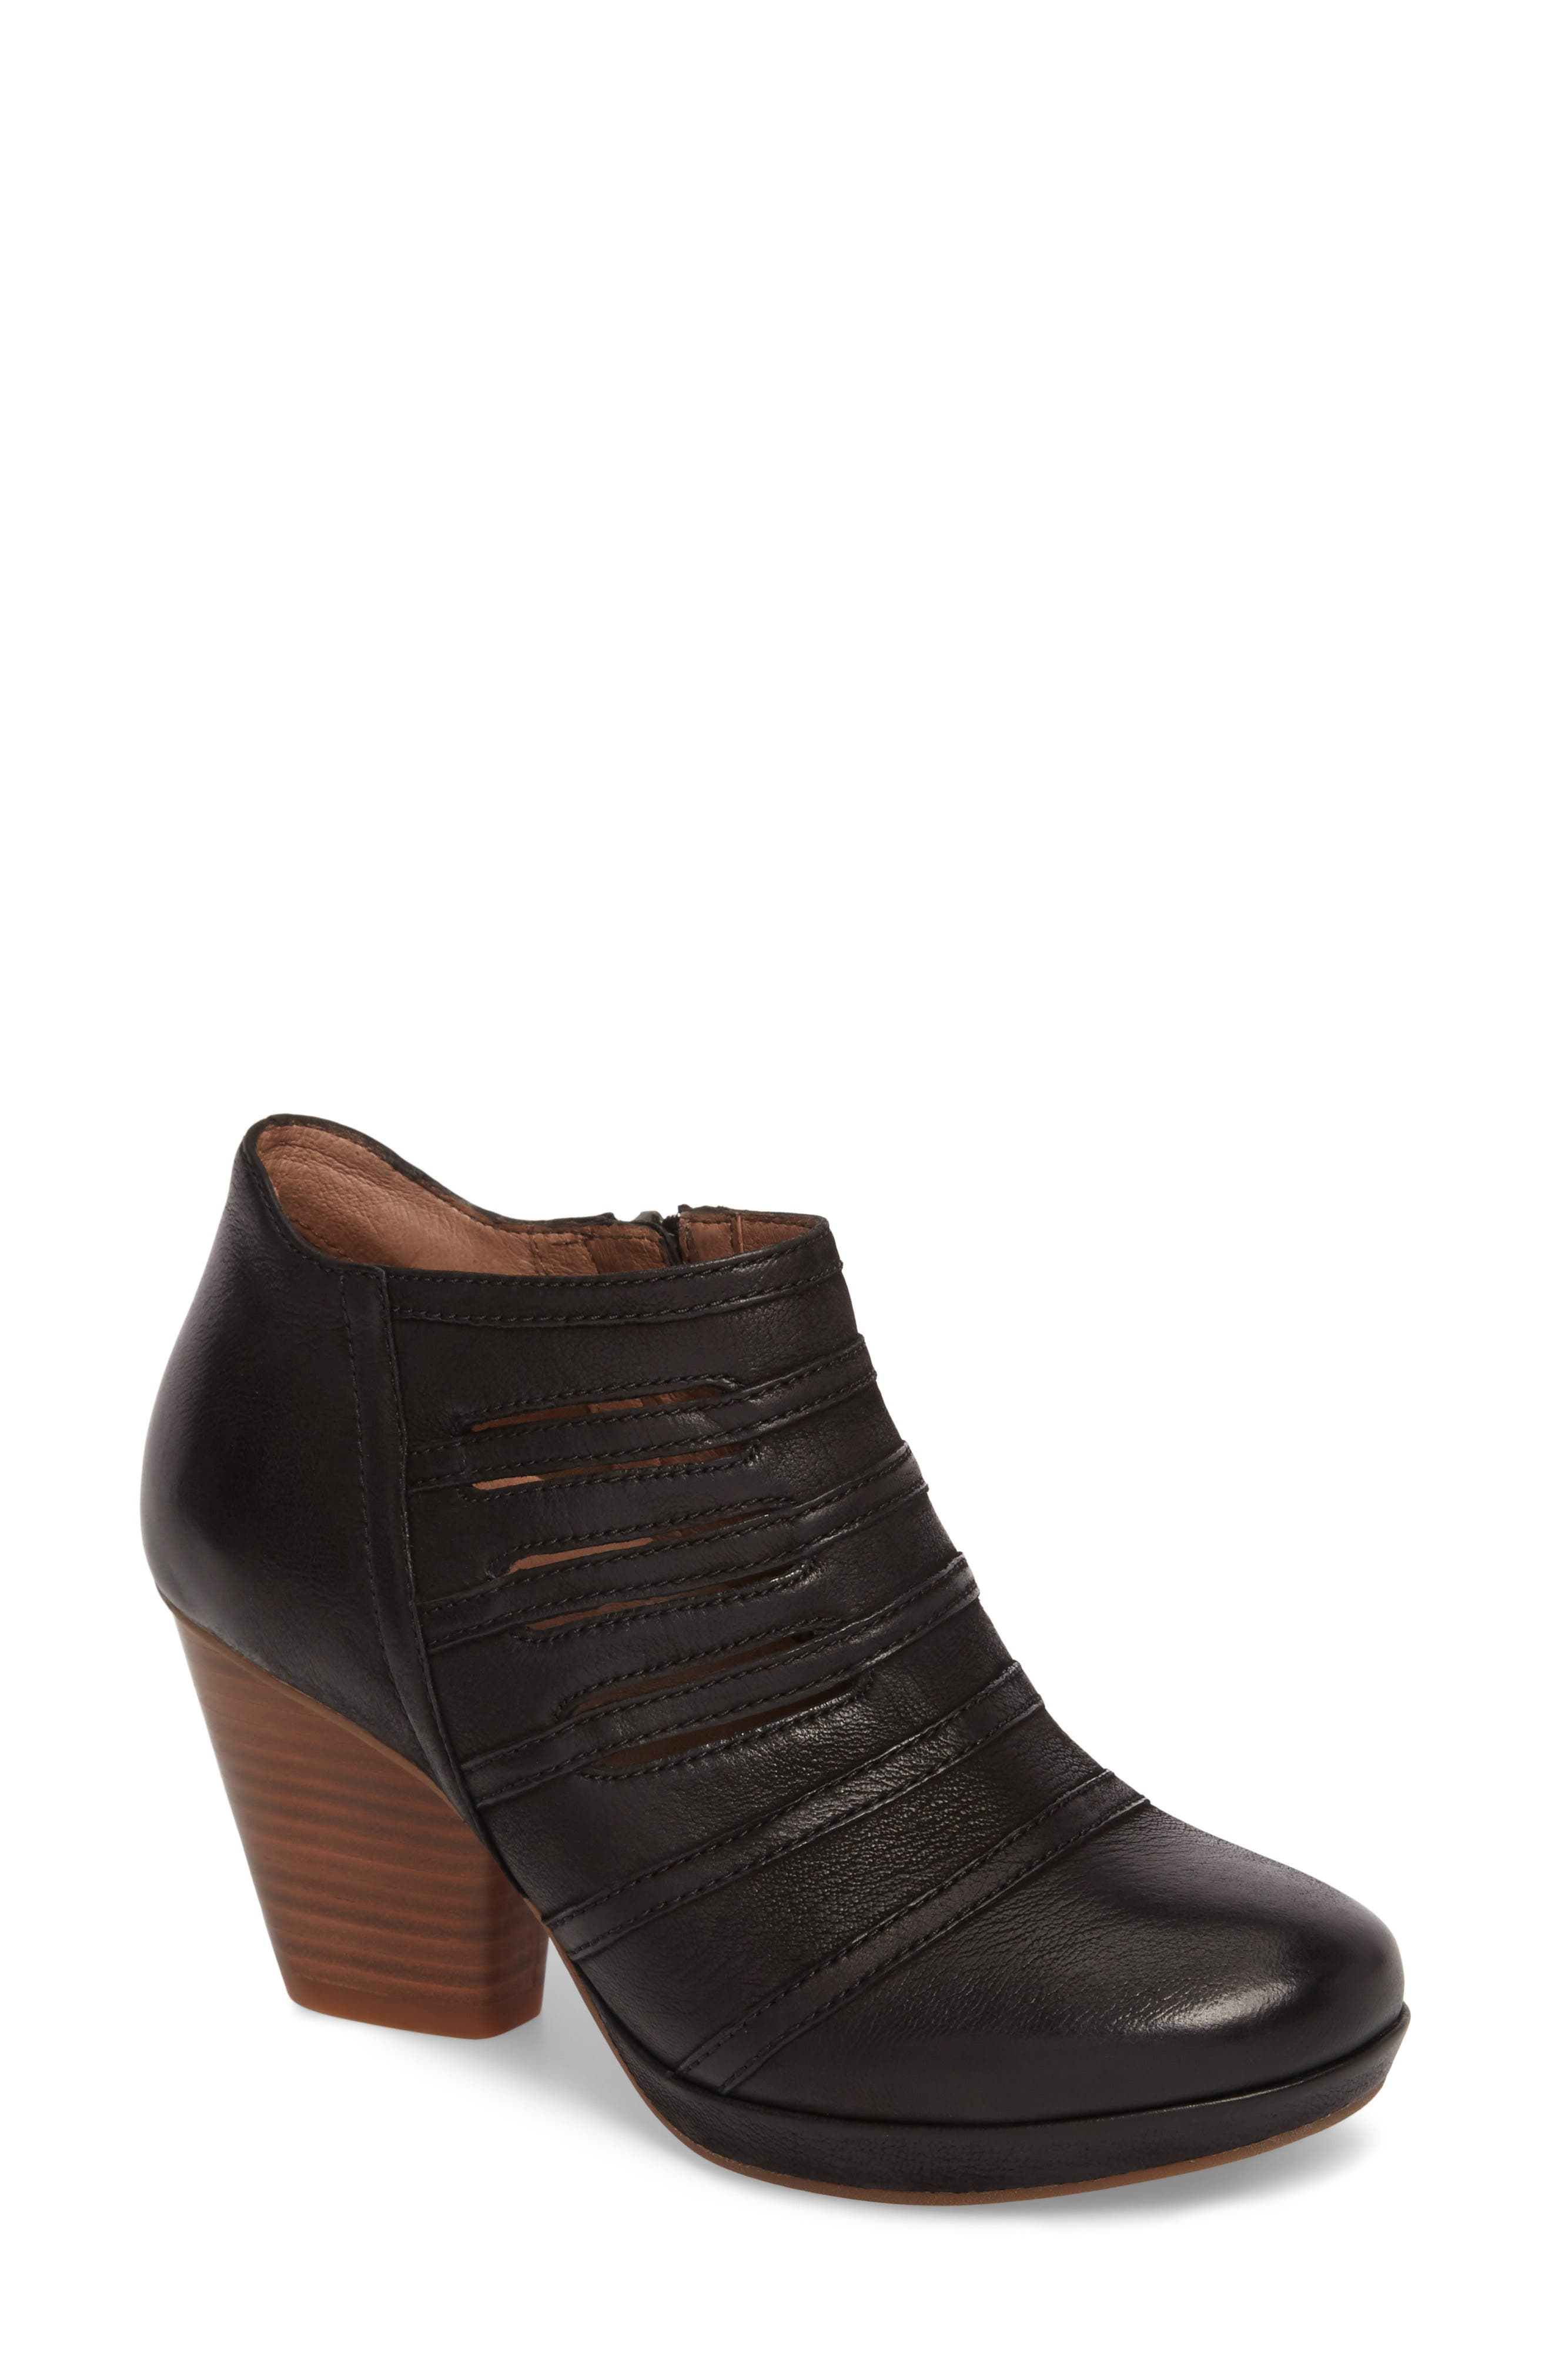 Meadow Bootie,                             Main thumbnail 1, color,                             Meadow Black Burnished Leather